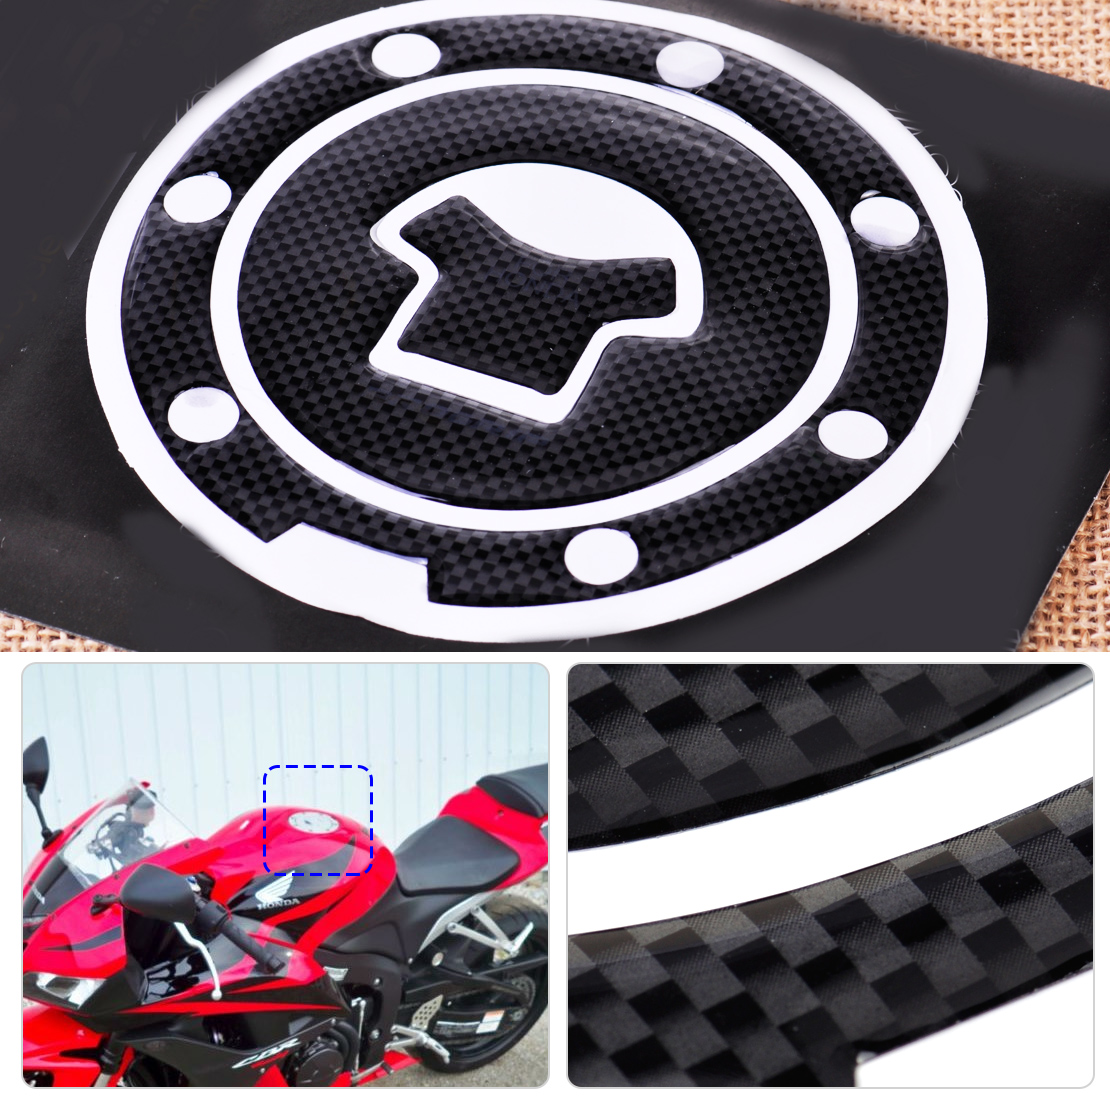 CITALL 1pc Motorcycle Sticker Fuel Gas Cap Tank Cover Pad Decal ... for Honda Sticker Design For Motorcycle  55dqh